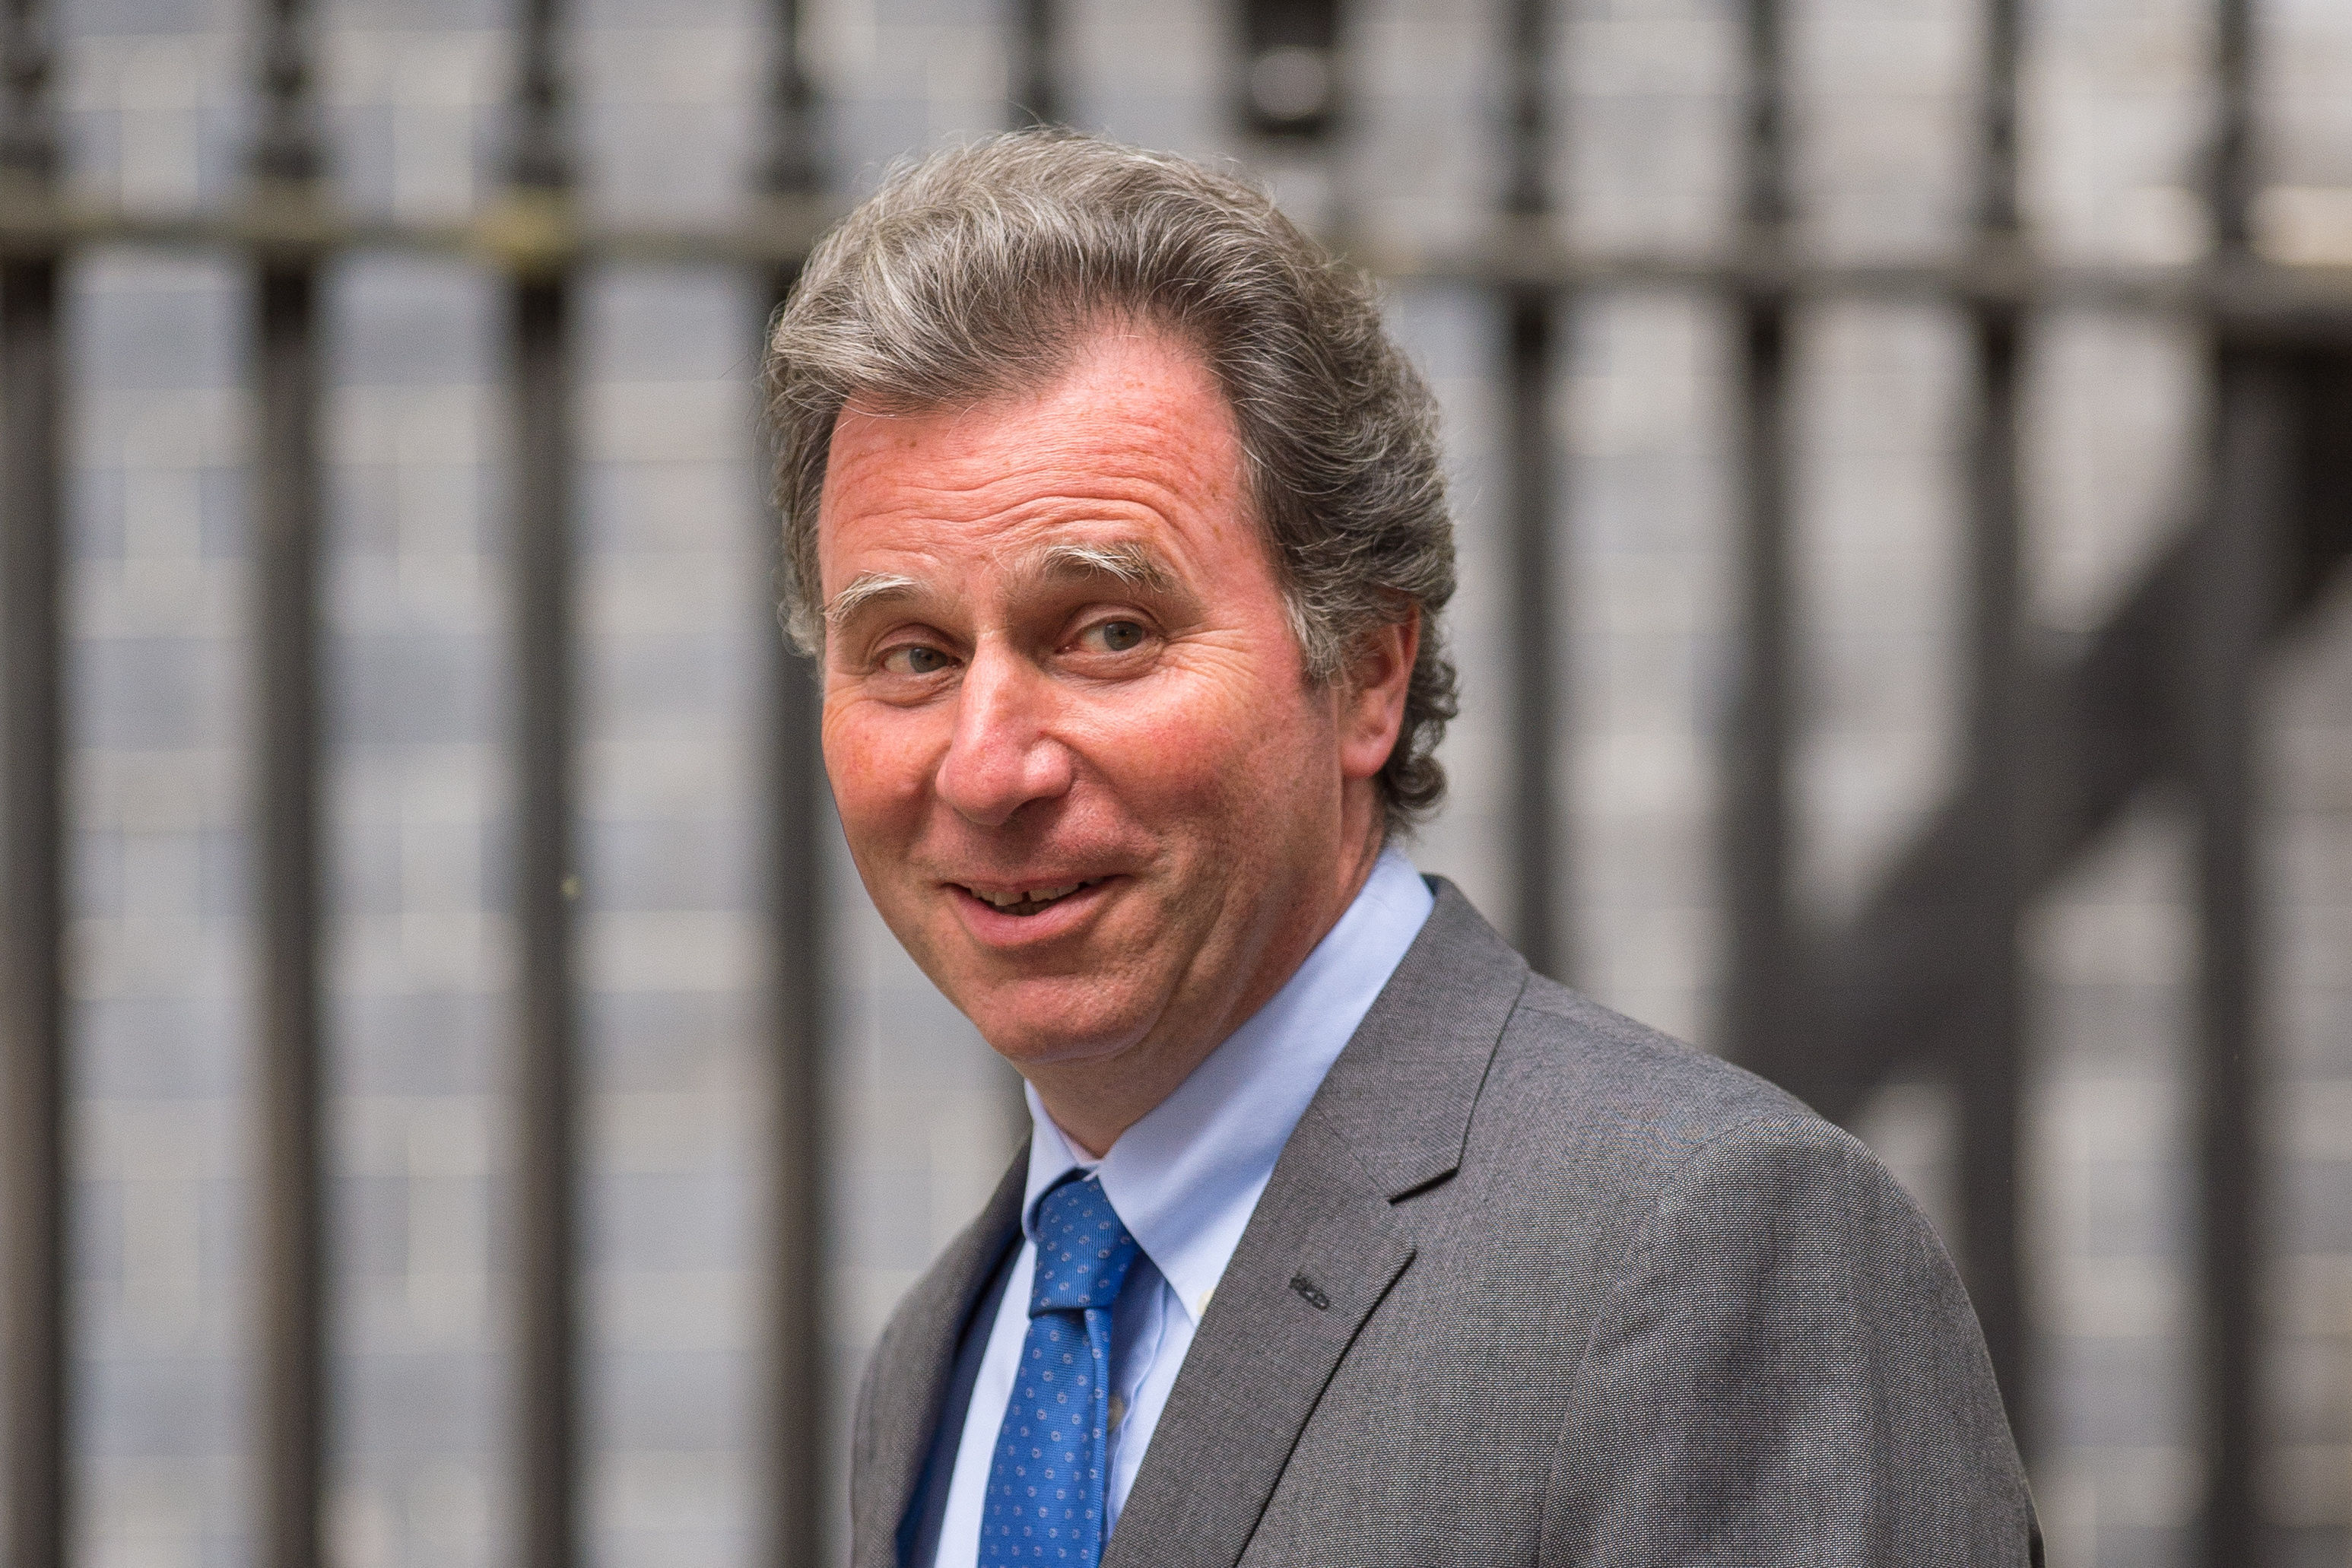 Chancellor of the Duchy of Lancaster Oliver Letwin, who is in charge of the Cabinet Office. Pic: Dominic Lipinski/PA Wire